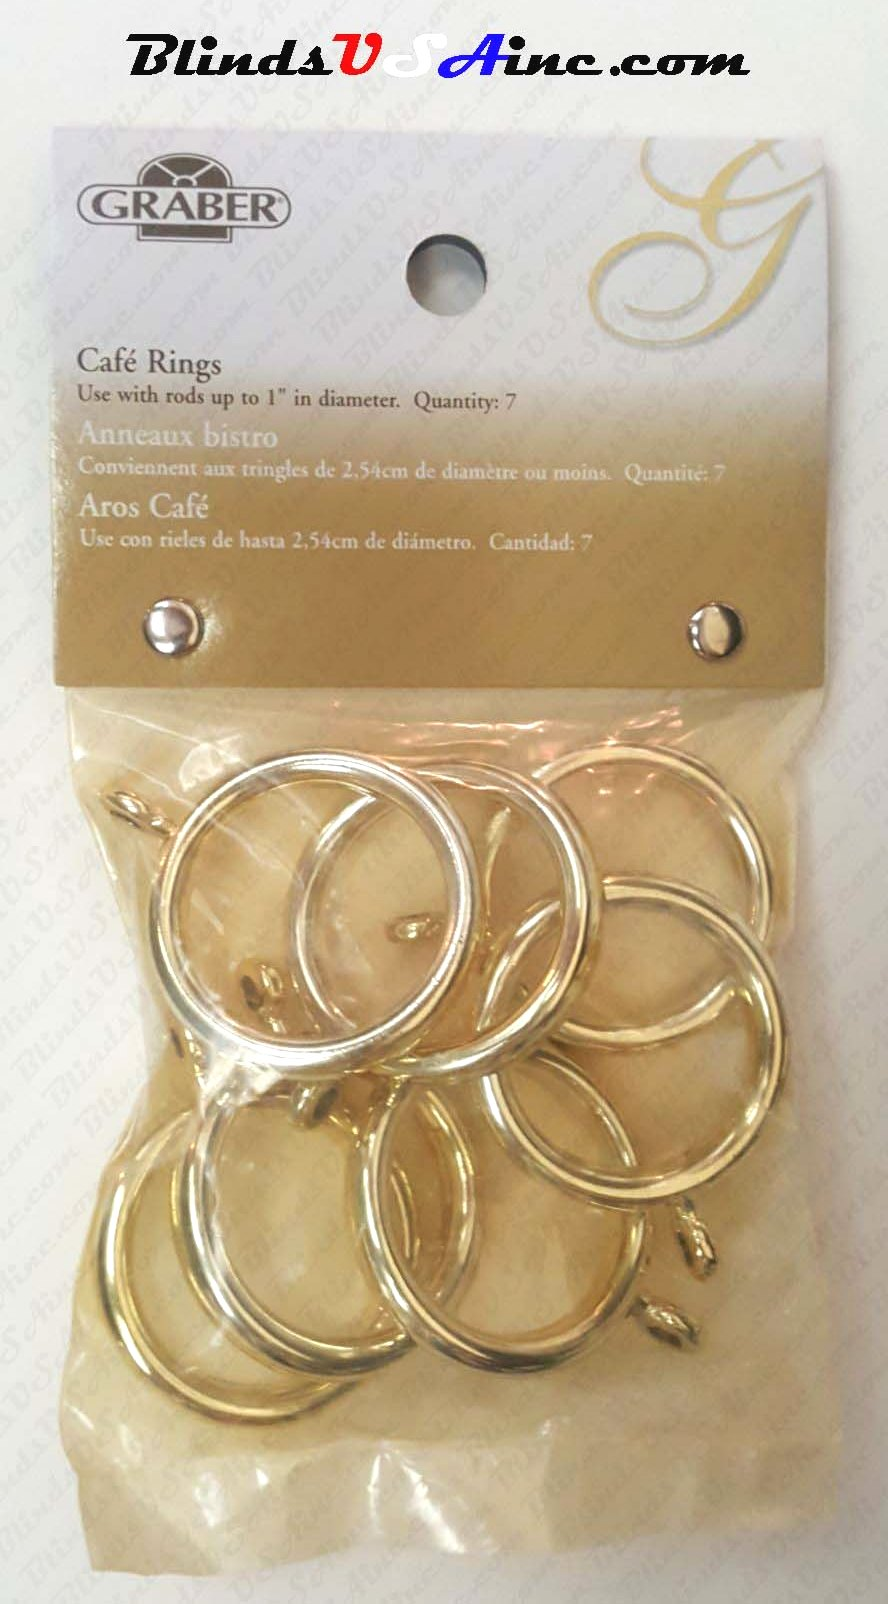 Graber Cafe Rings with Eyelet, pack of 7, finish brass, 1-1/4 inch inner diameter, Item # DCRng-820-8, Part # 5-820-8